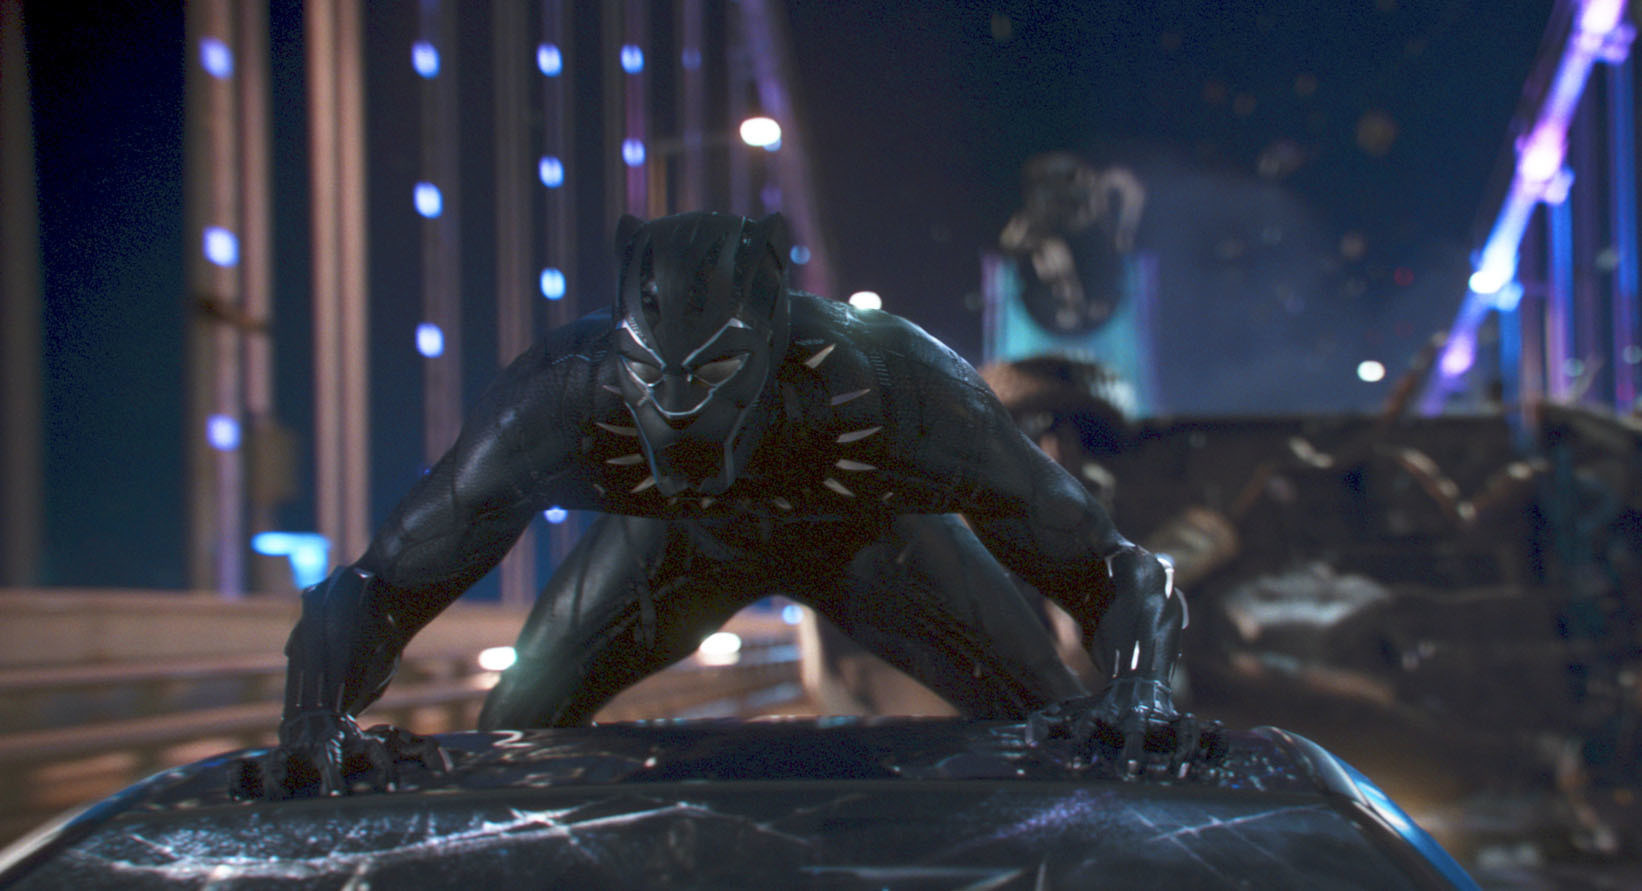 Marvel Black Panther Black Panther Avengers Infinity: 'Black Panther' Has Been Passing Box Office Milestones